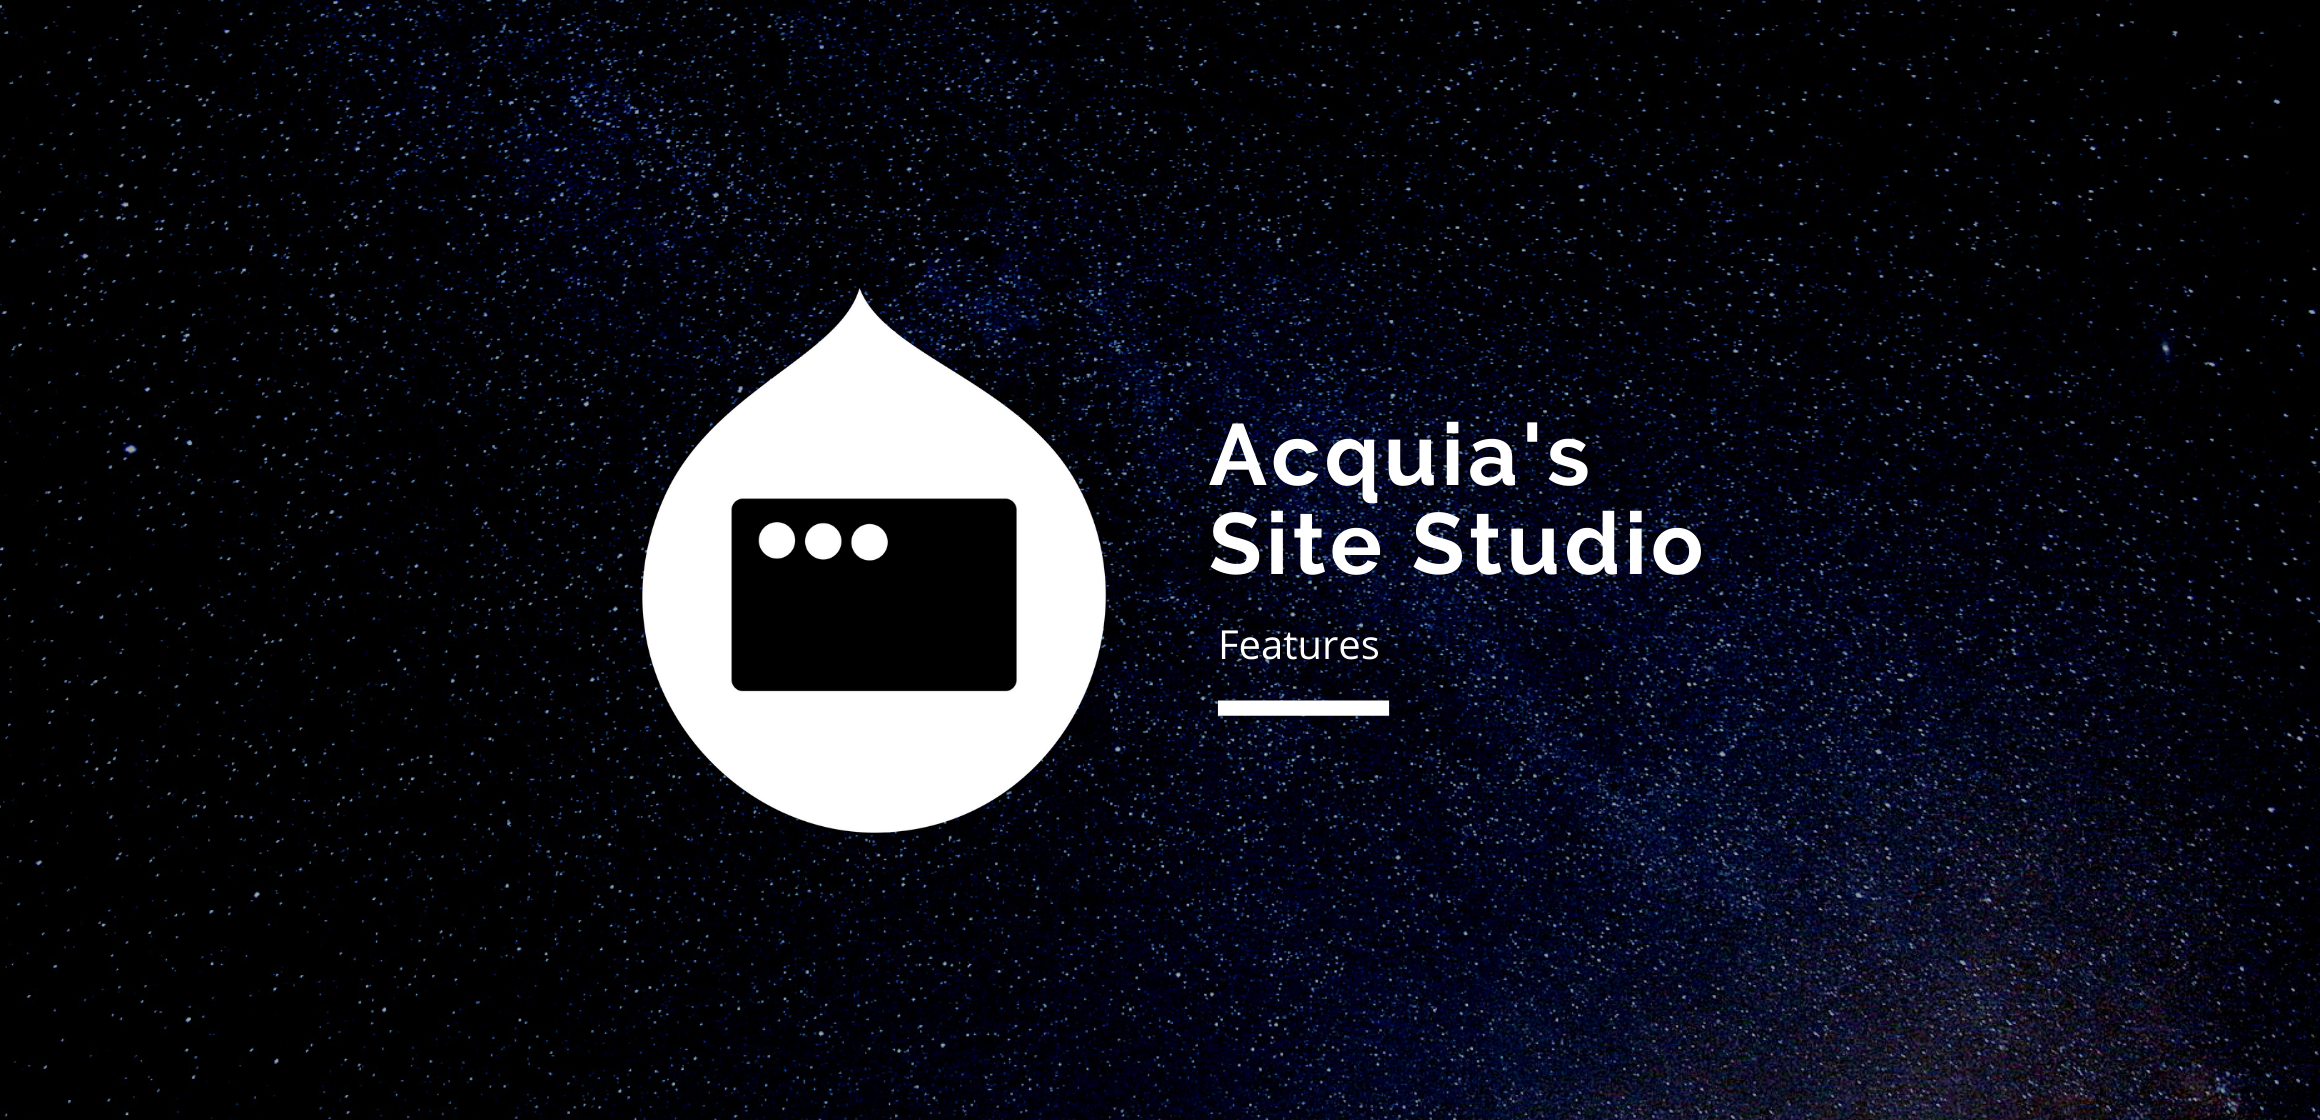 Acquia Site Studio